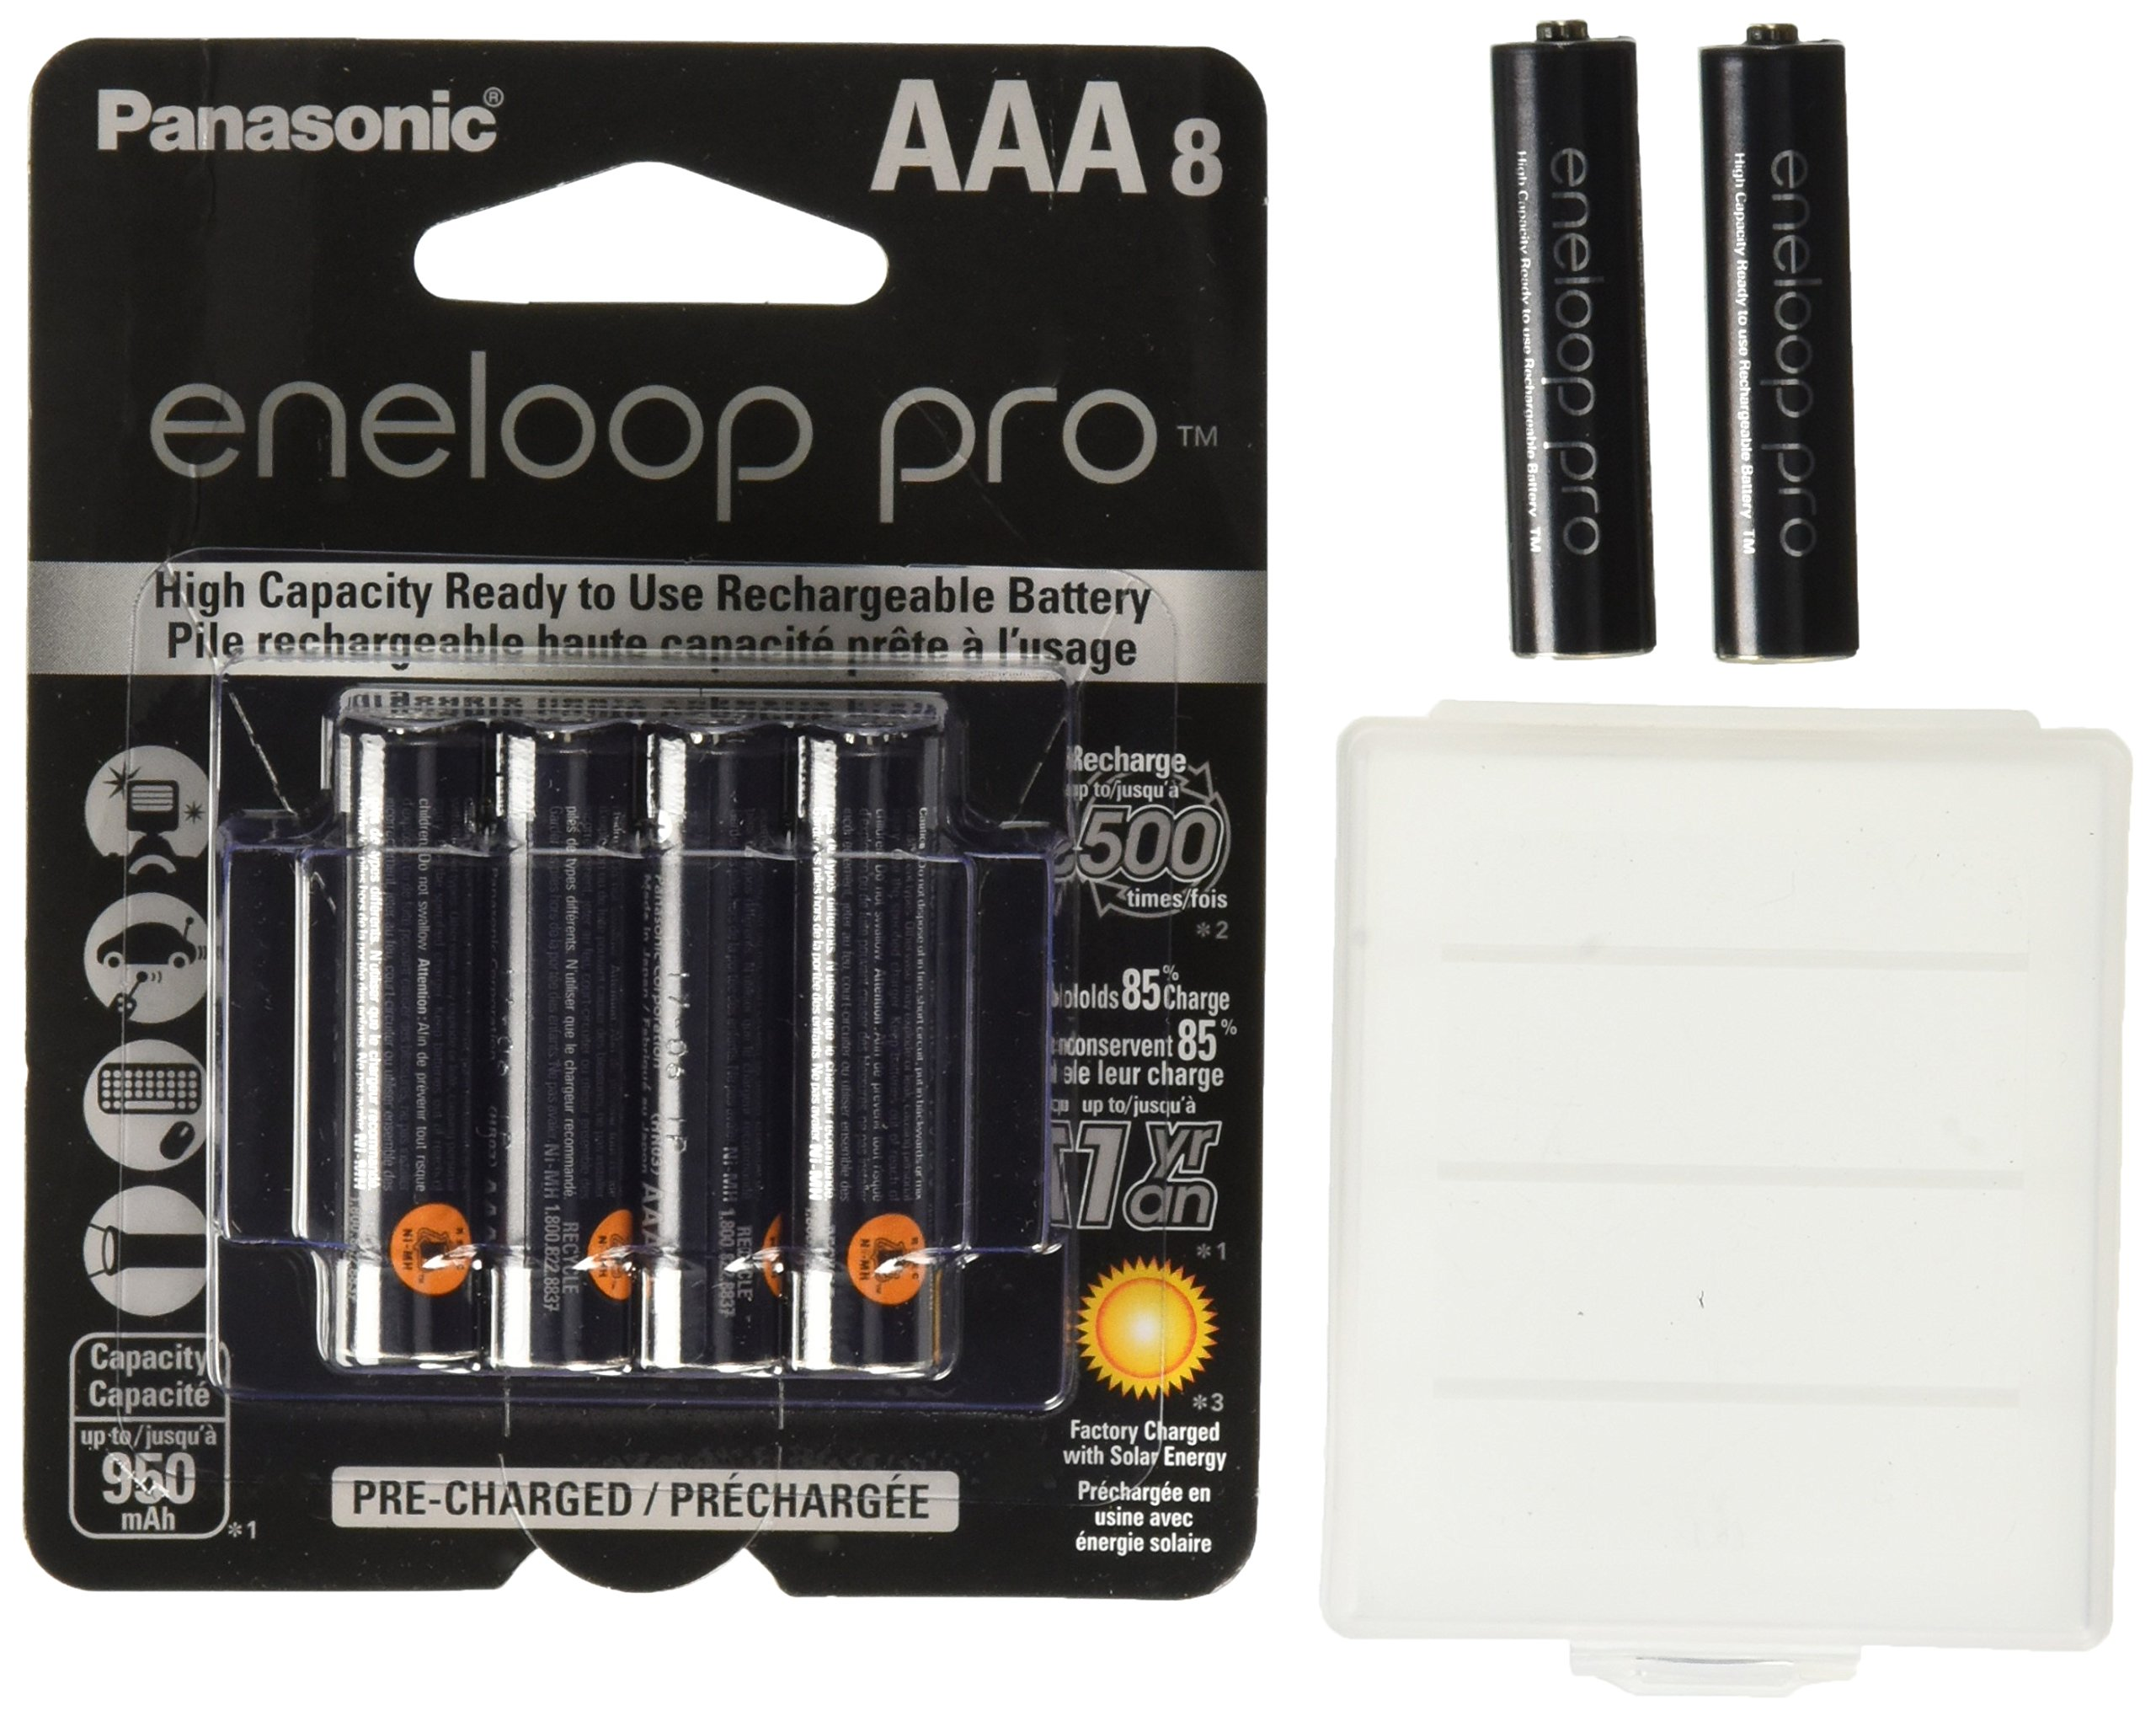 Eneloop Pro AAA 950mAh Min 900mAh High Capacity Ni-MH Pre-Charged Rechargeable Battery with Holder Pack of 10